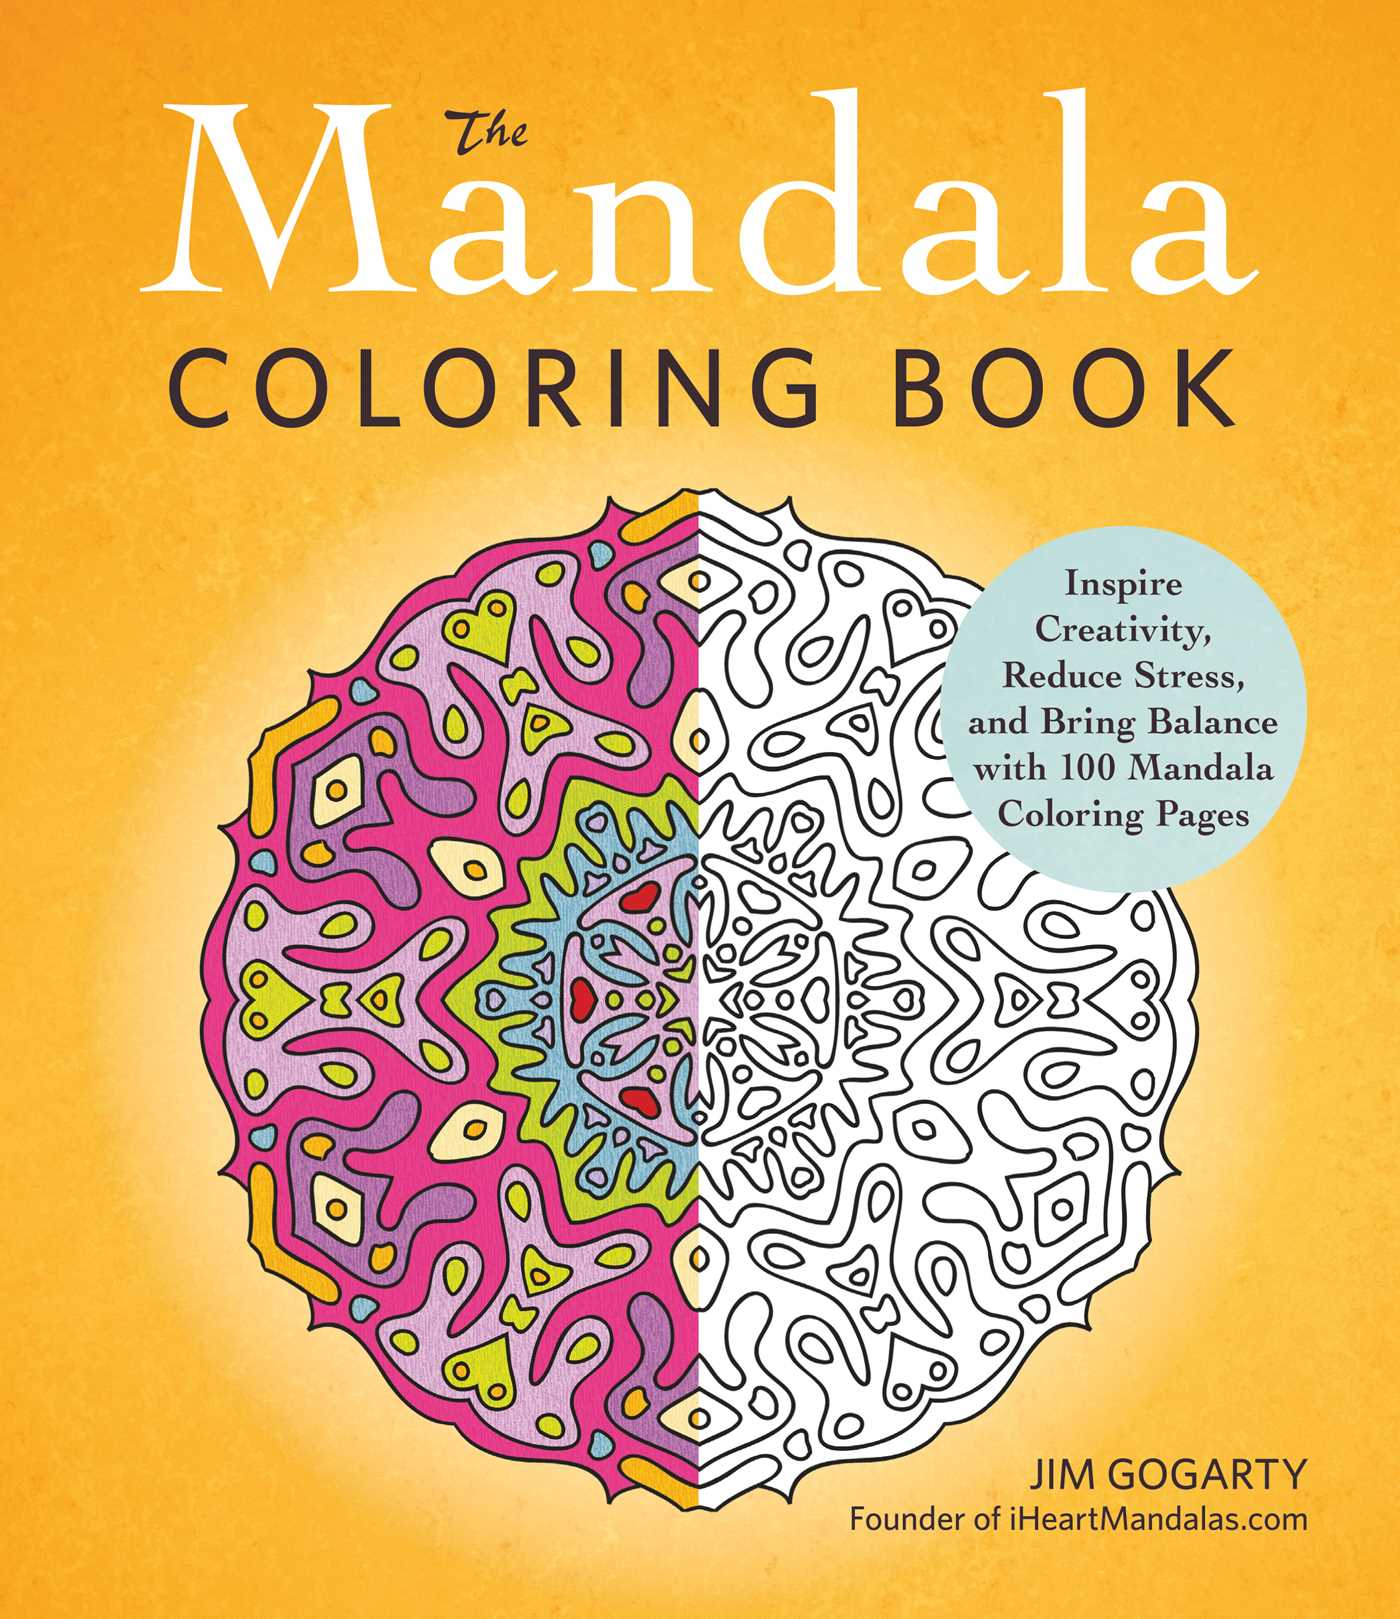 The Mandala Coloring Book Book by Jim Gogarty Official Publisher